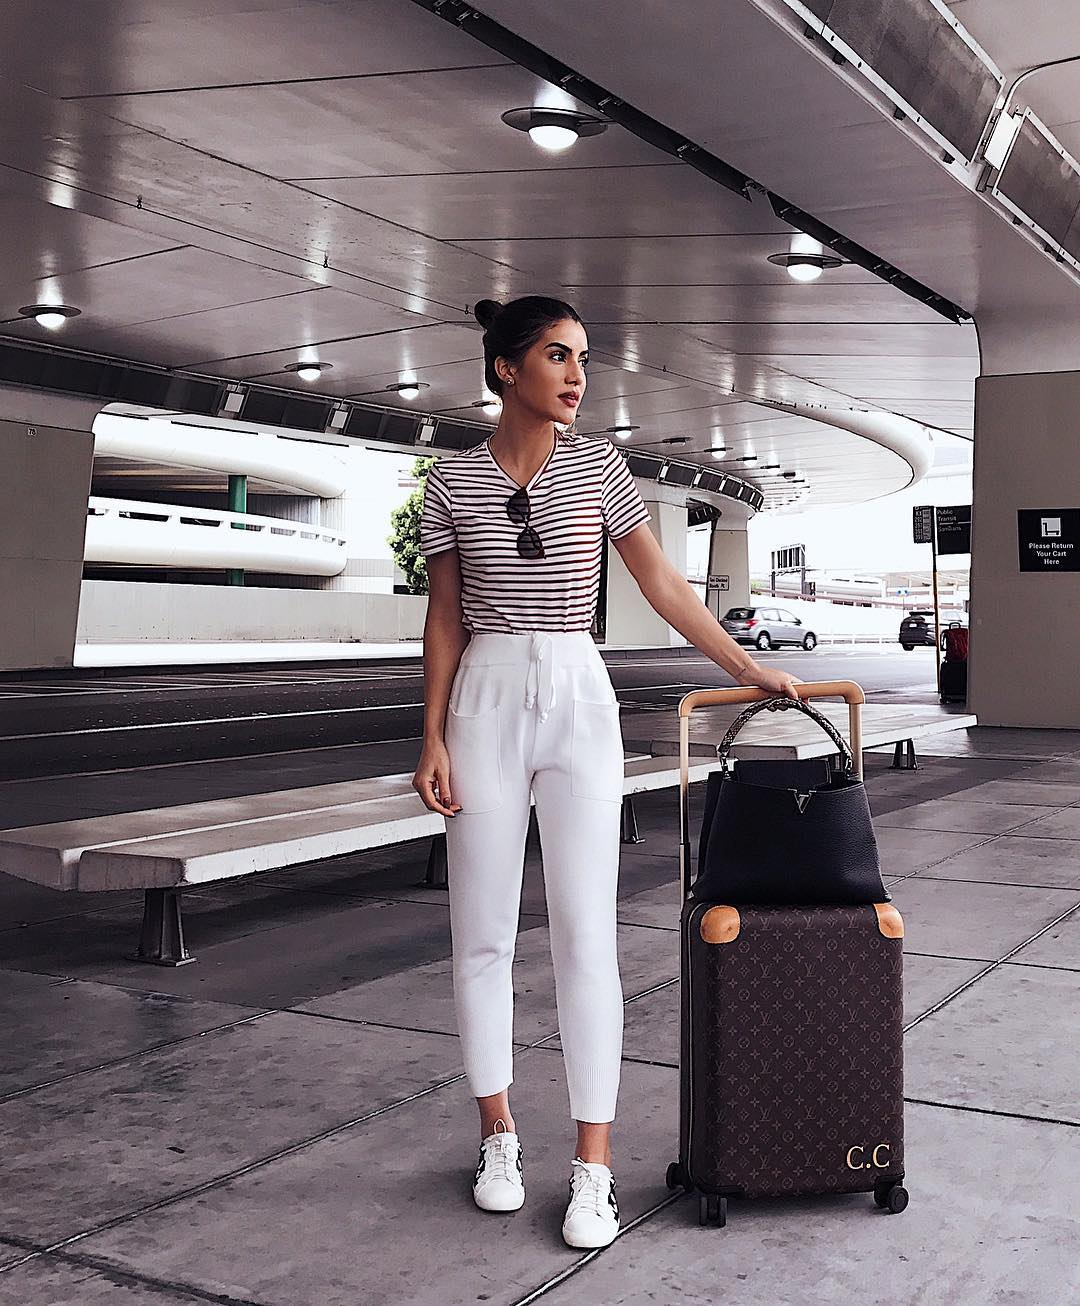 Outfits 2017 6 Outfits To Wear To The Airport Crossroads